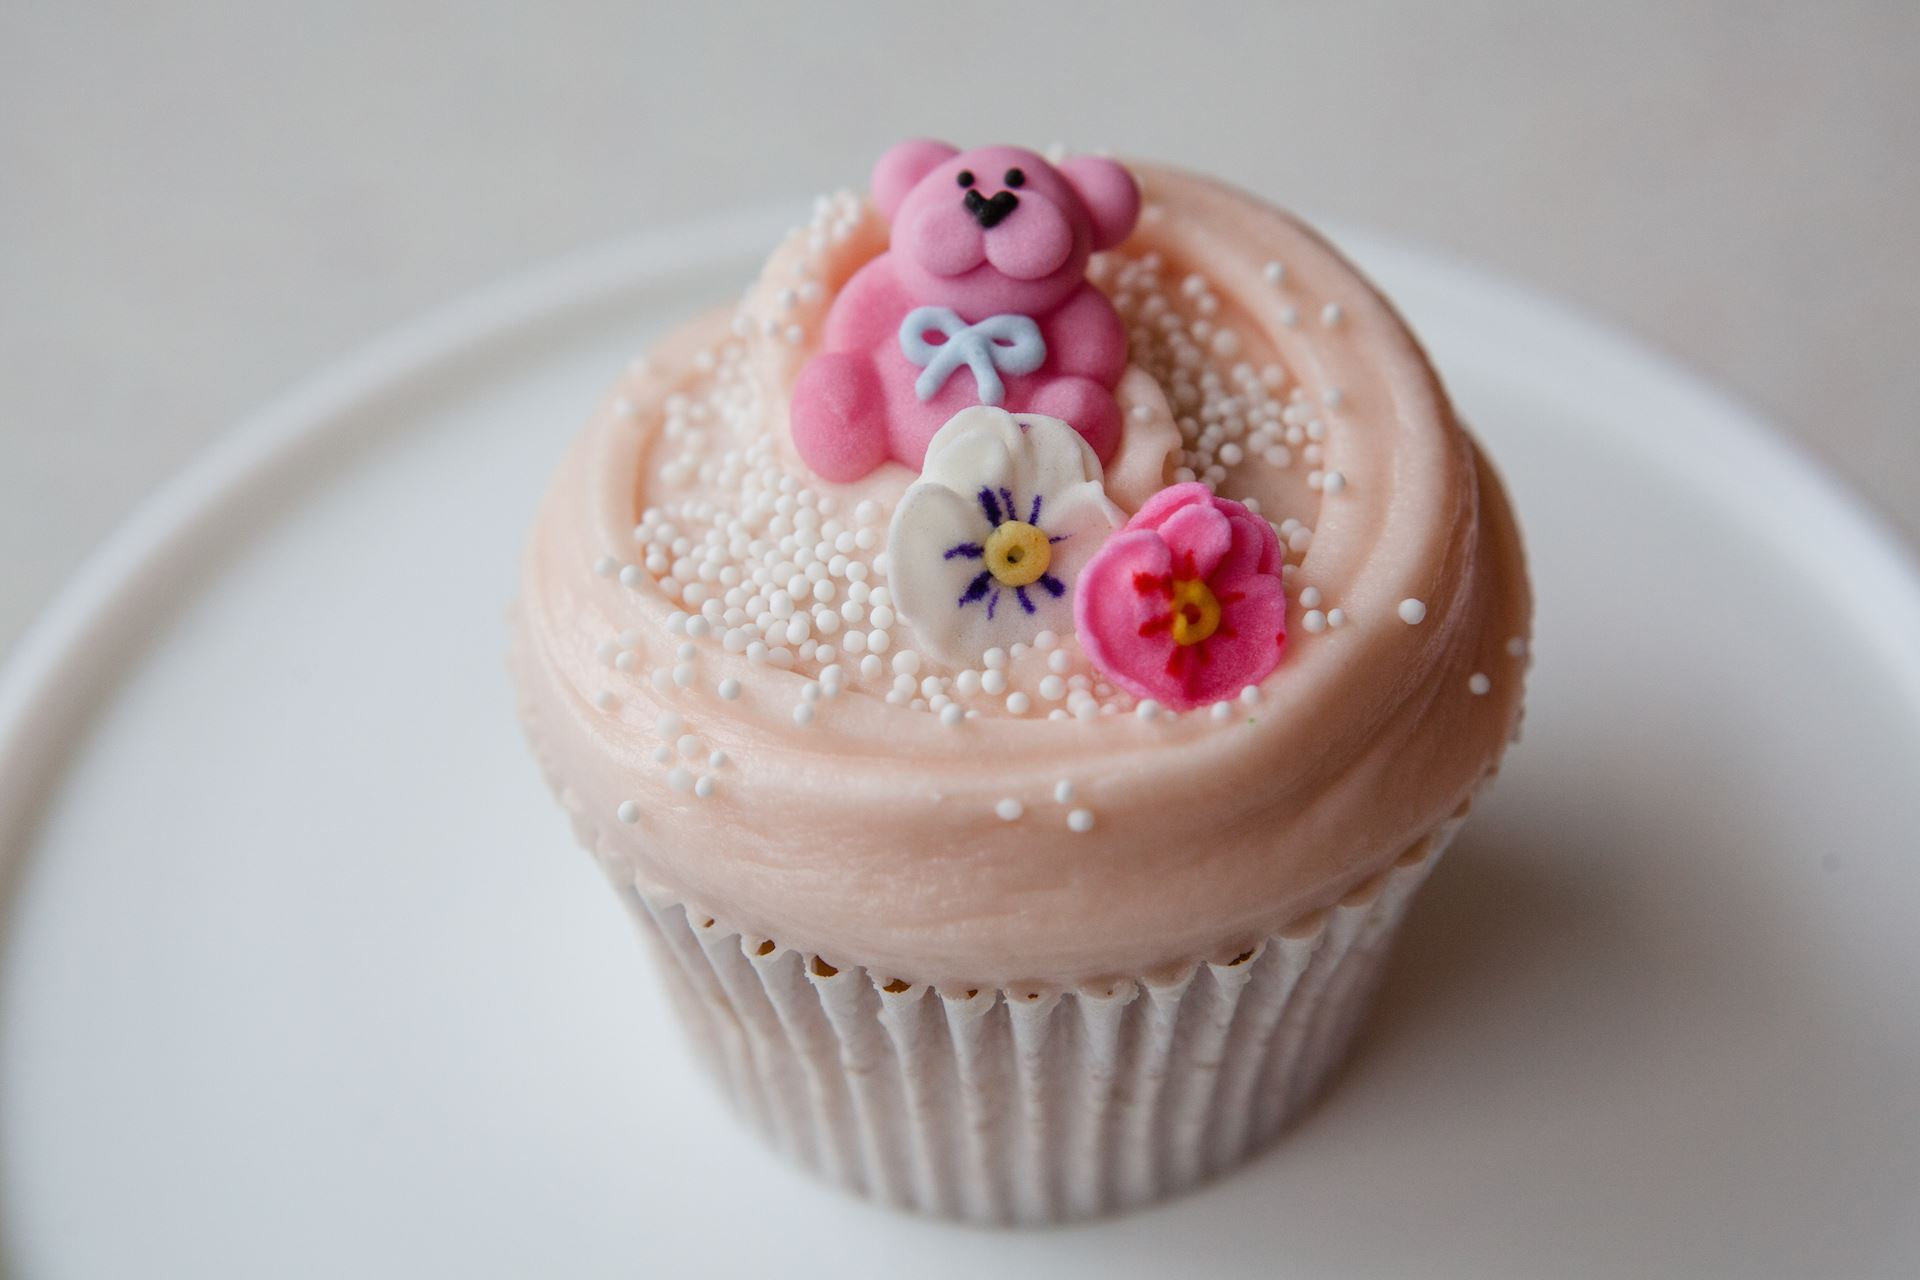 Free Babygay Cupcakes to Celebrate Cupcake Royale's 8,000 Check to NCLR